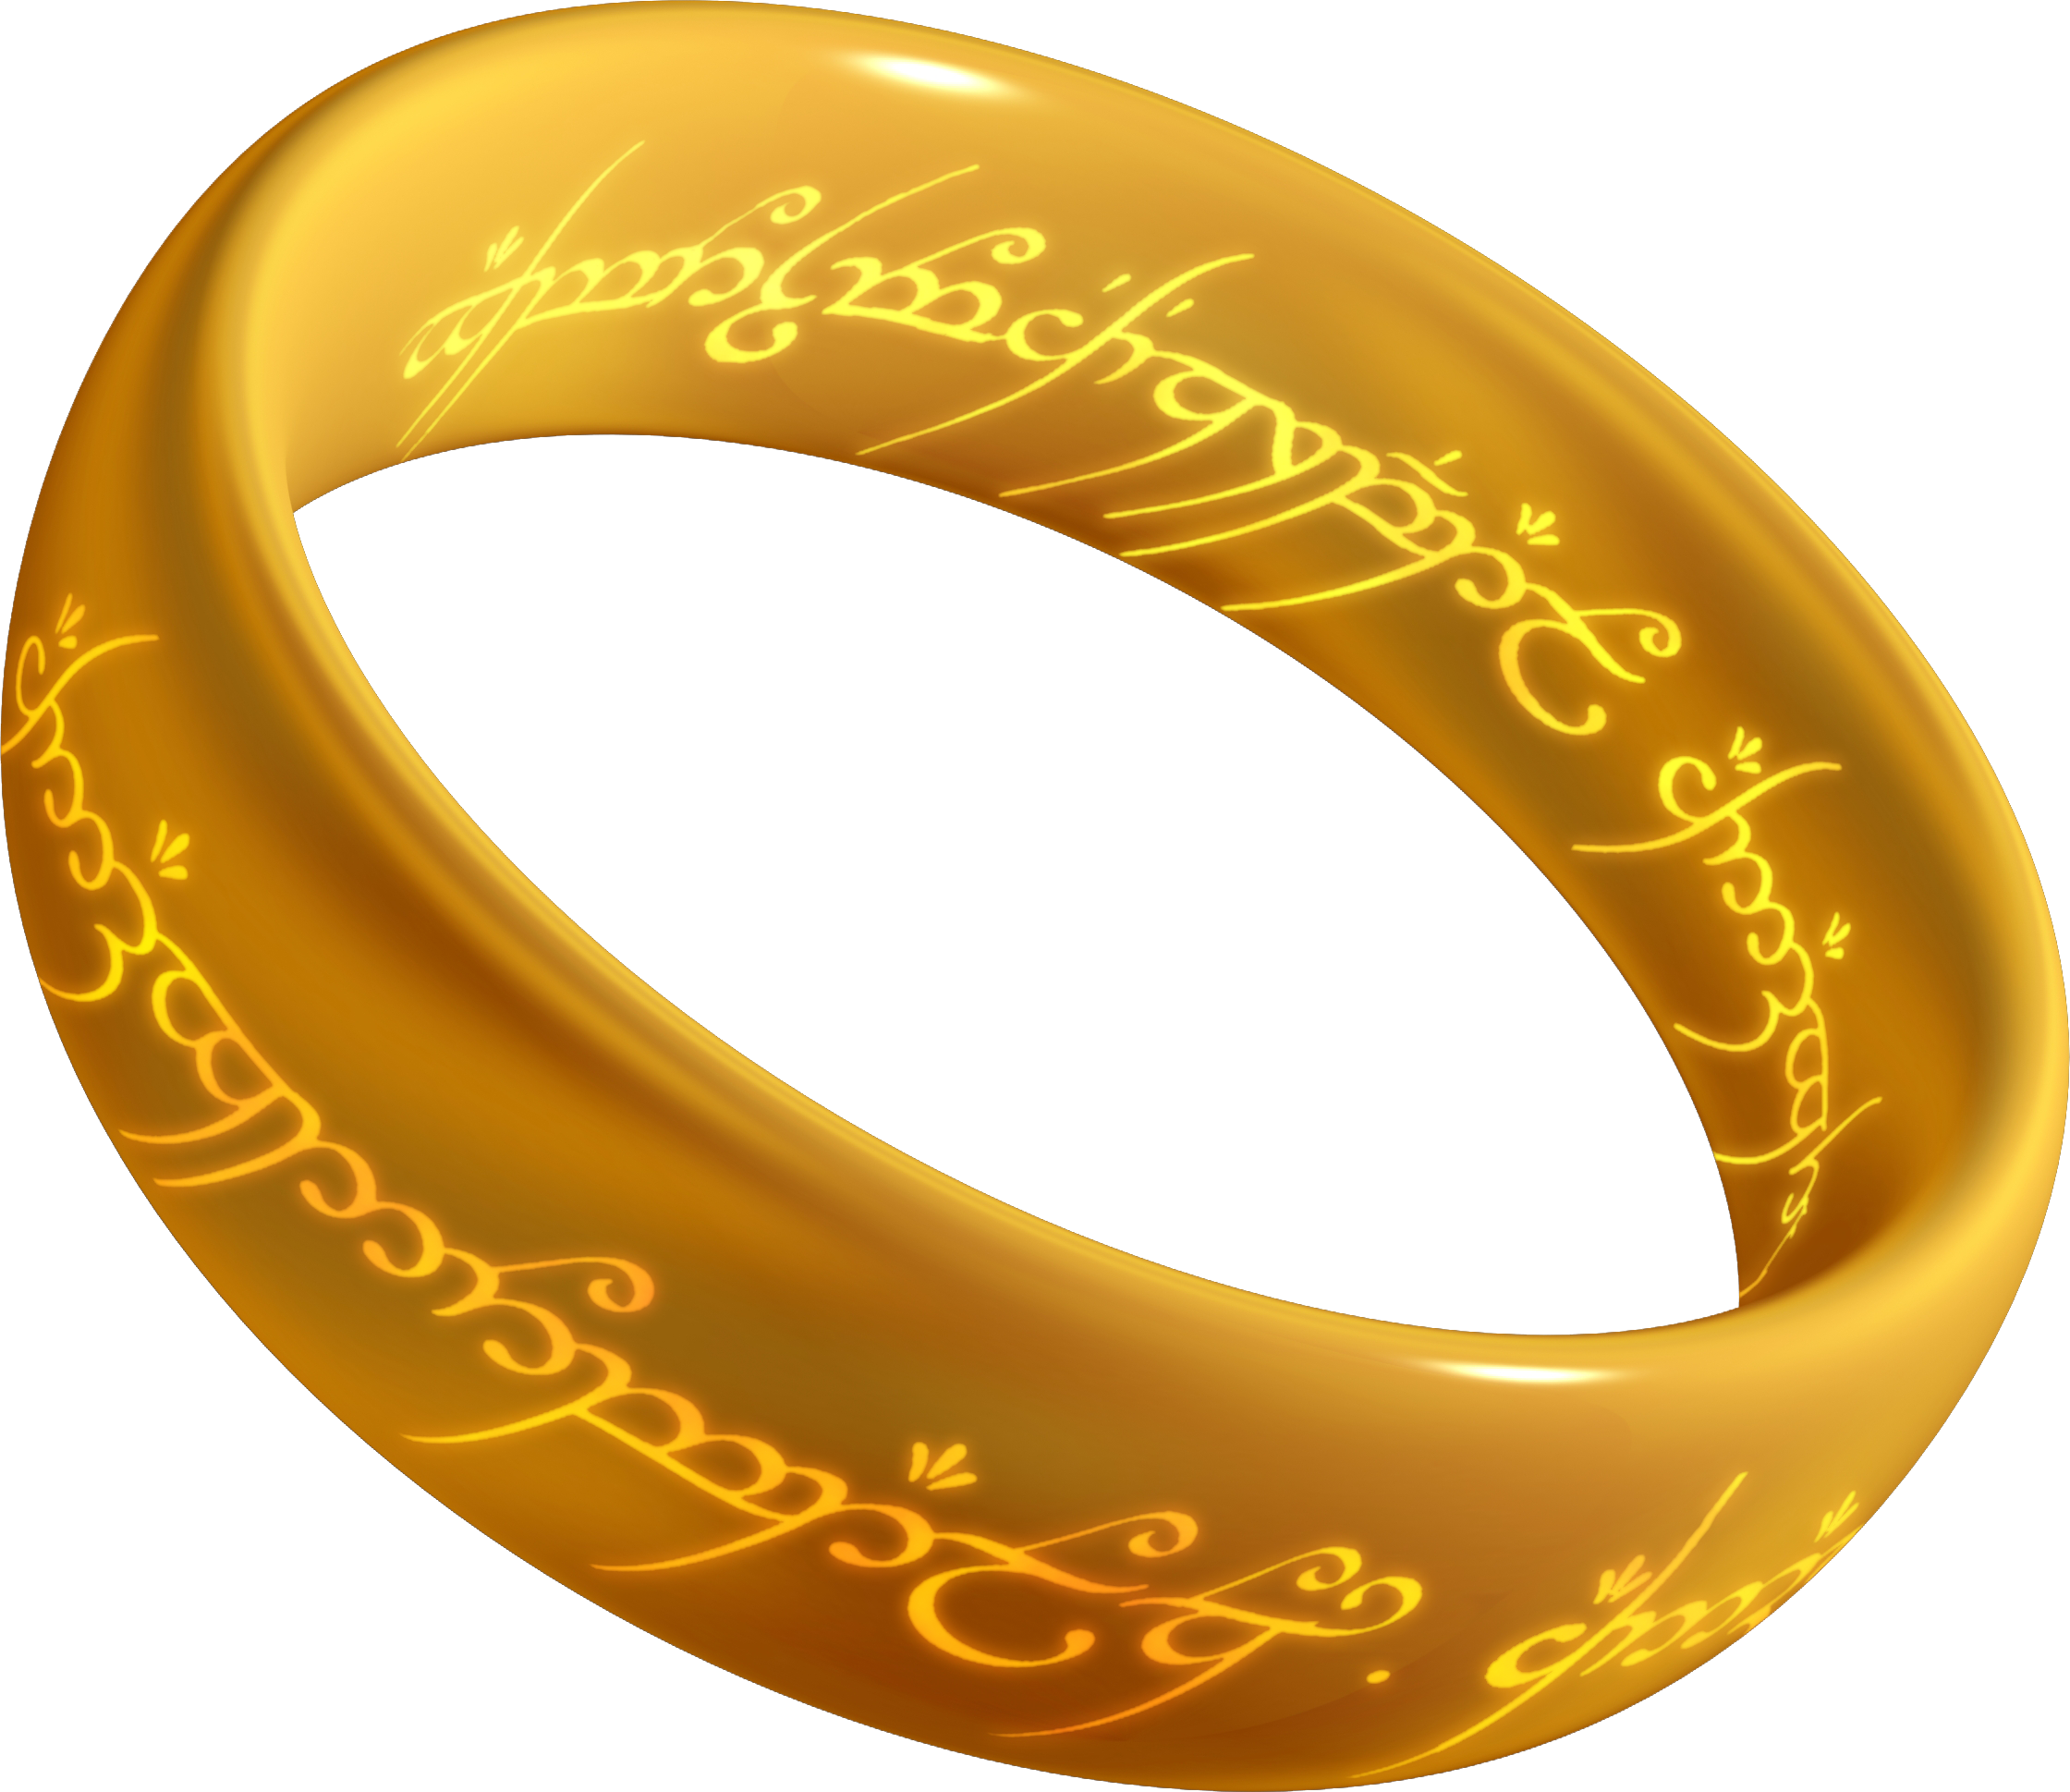 gold lord of the rings png logo #6404